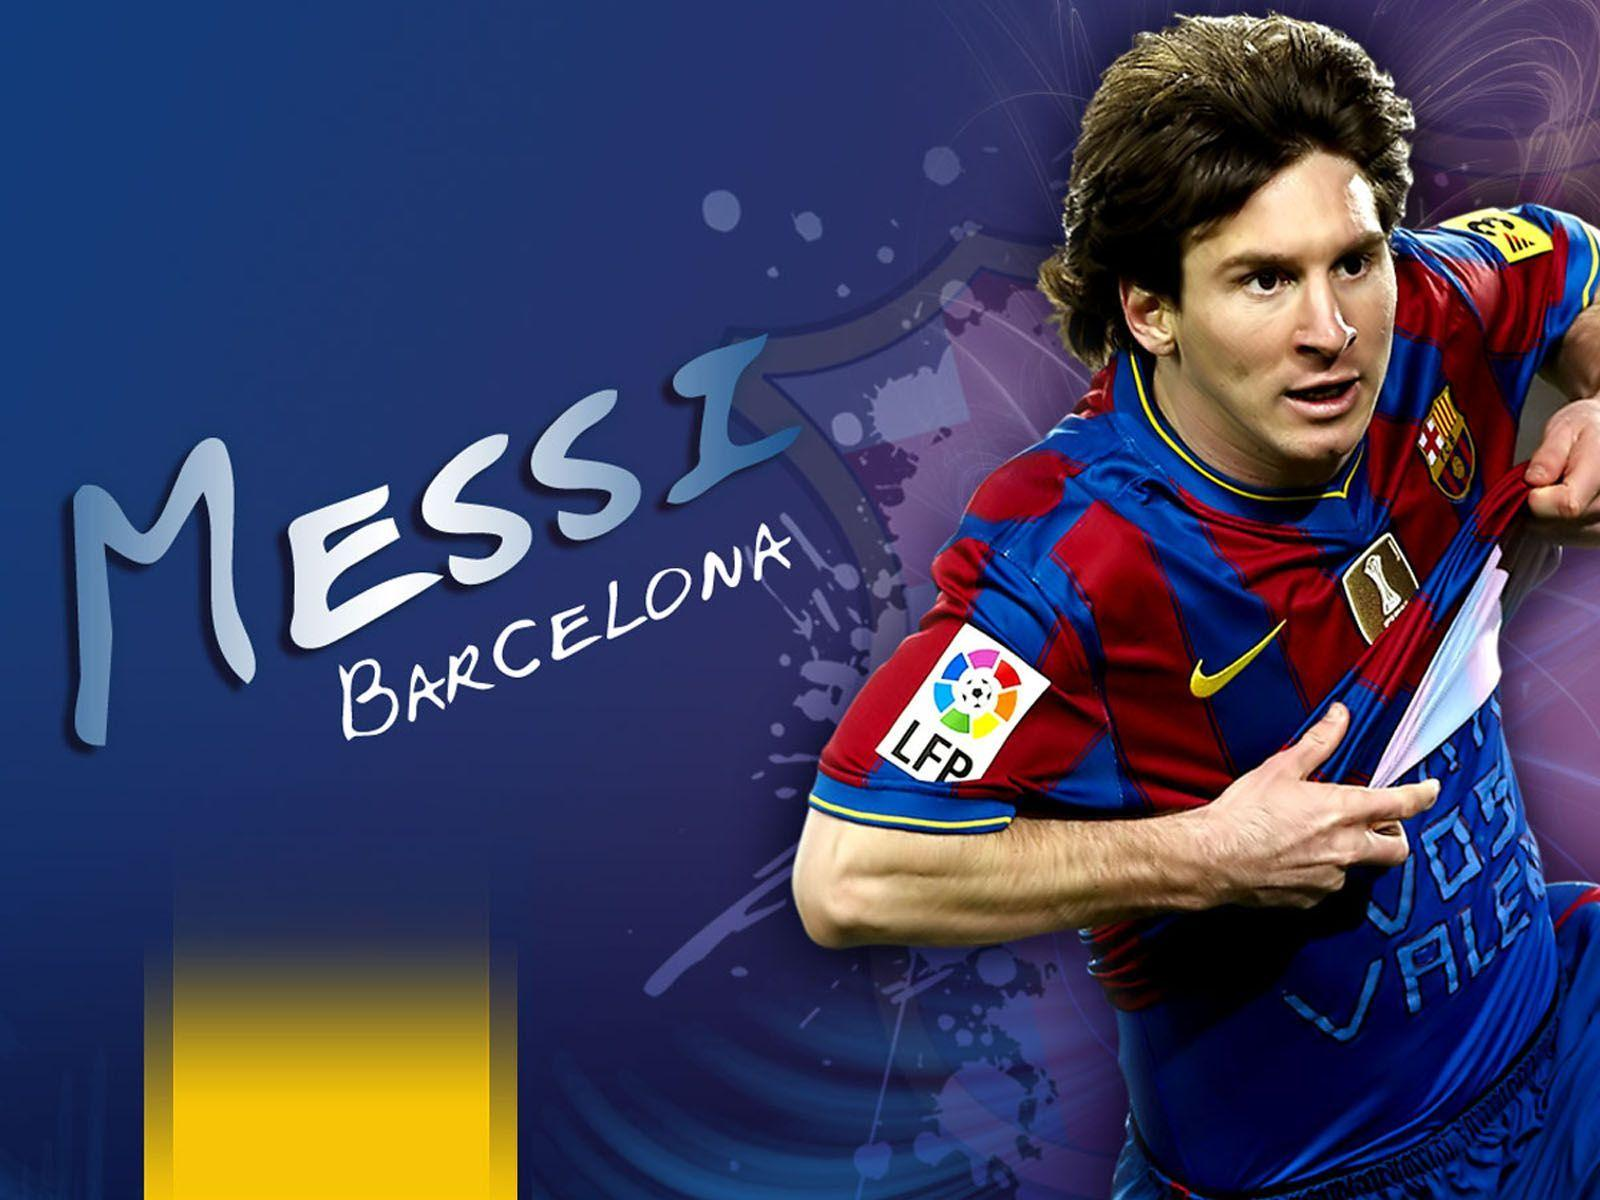 Messi Hd Wallpapers and Background